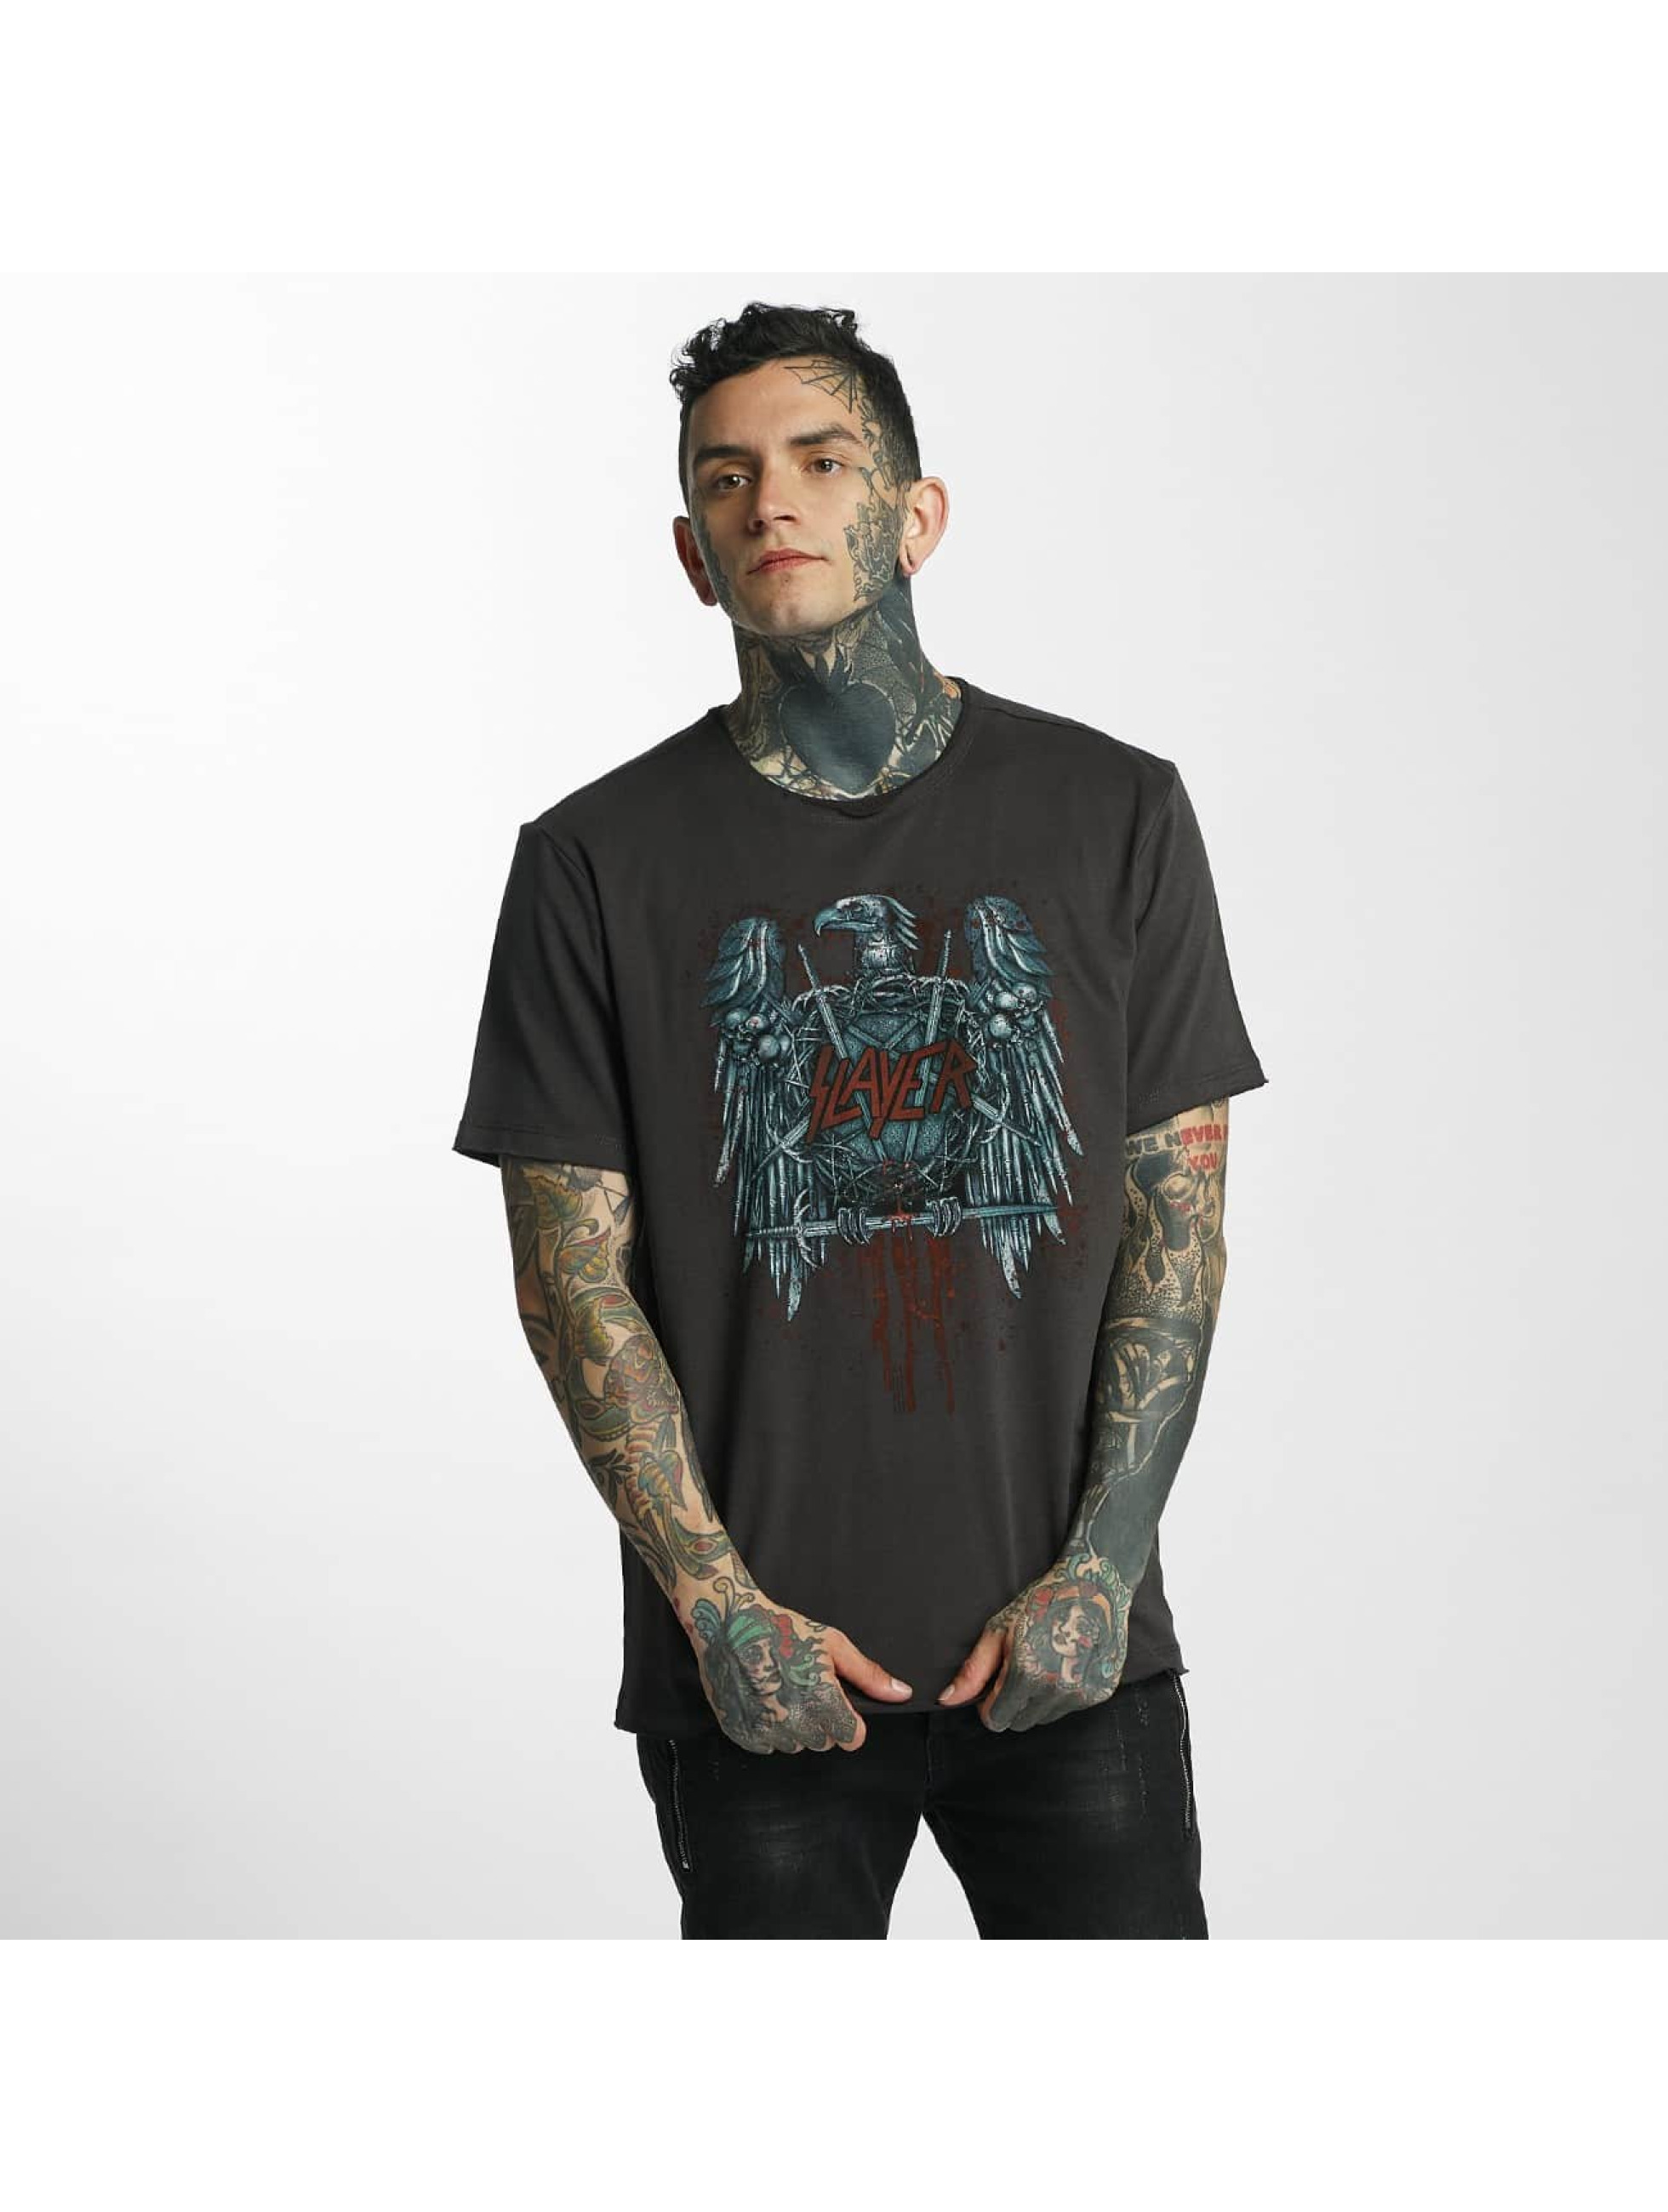 Amplified t-shirt Slayer Metal Edge grijs